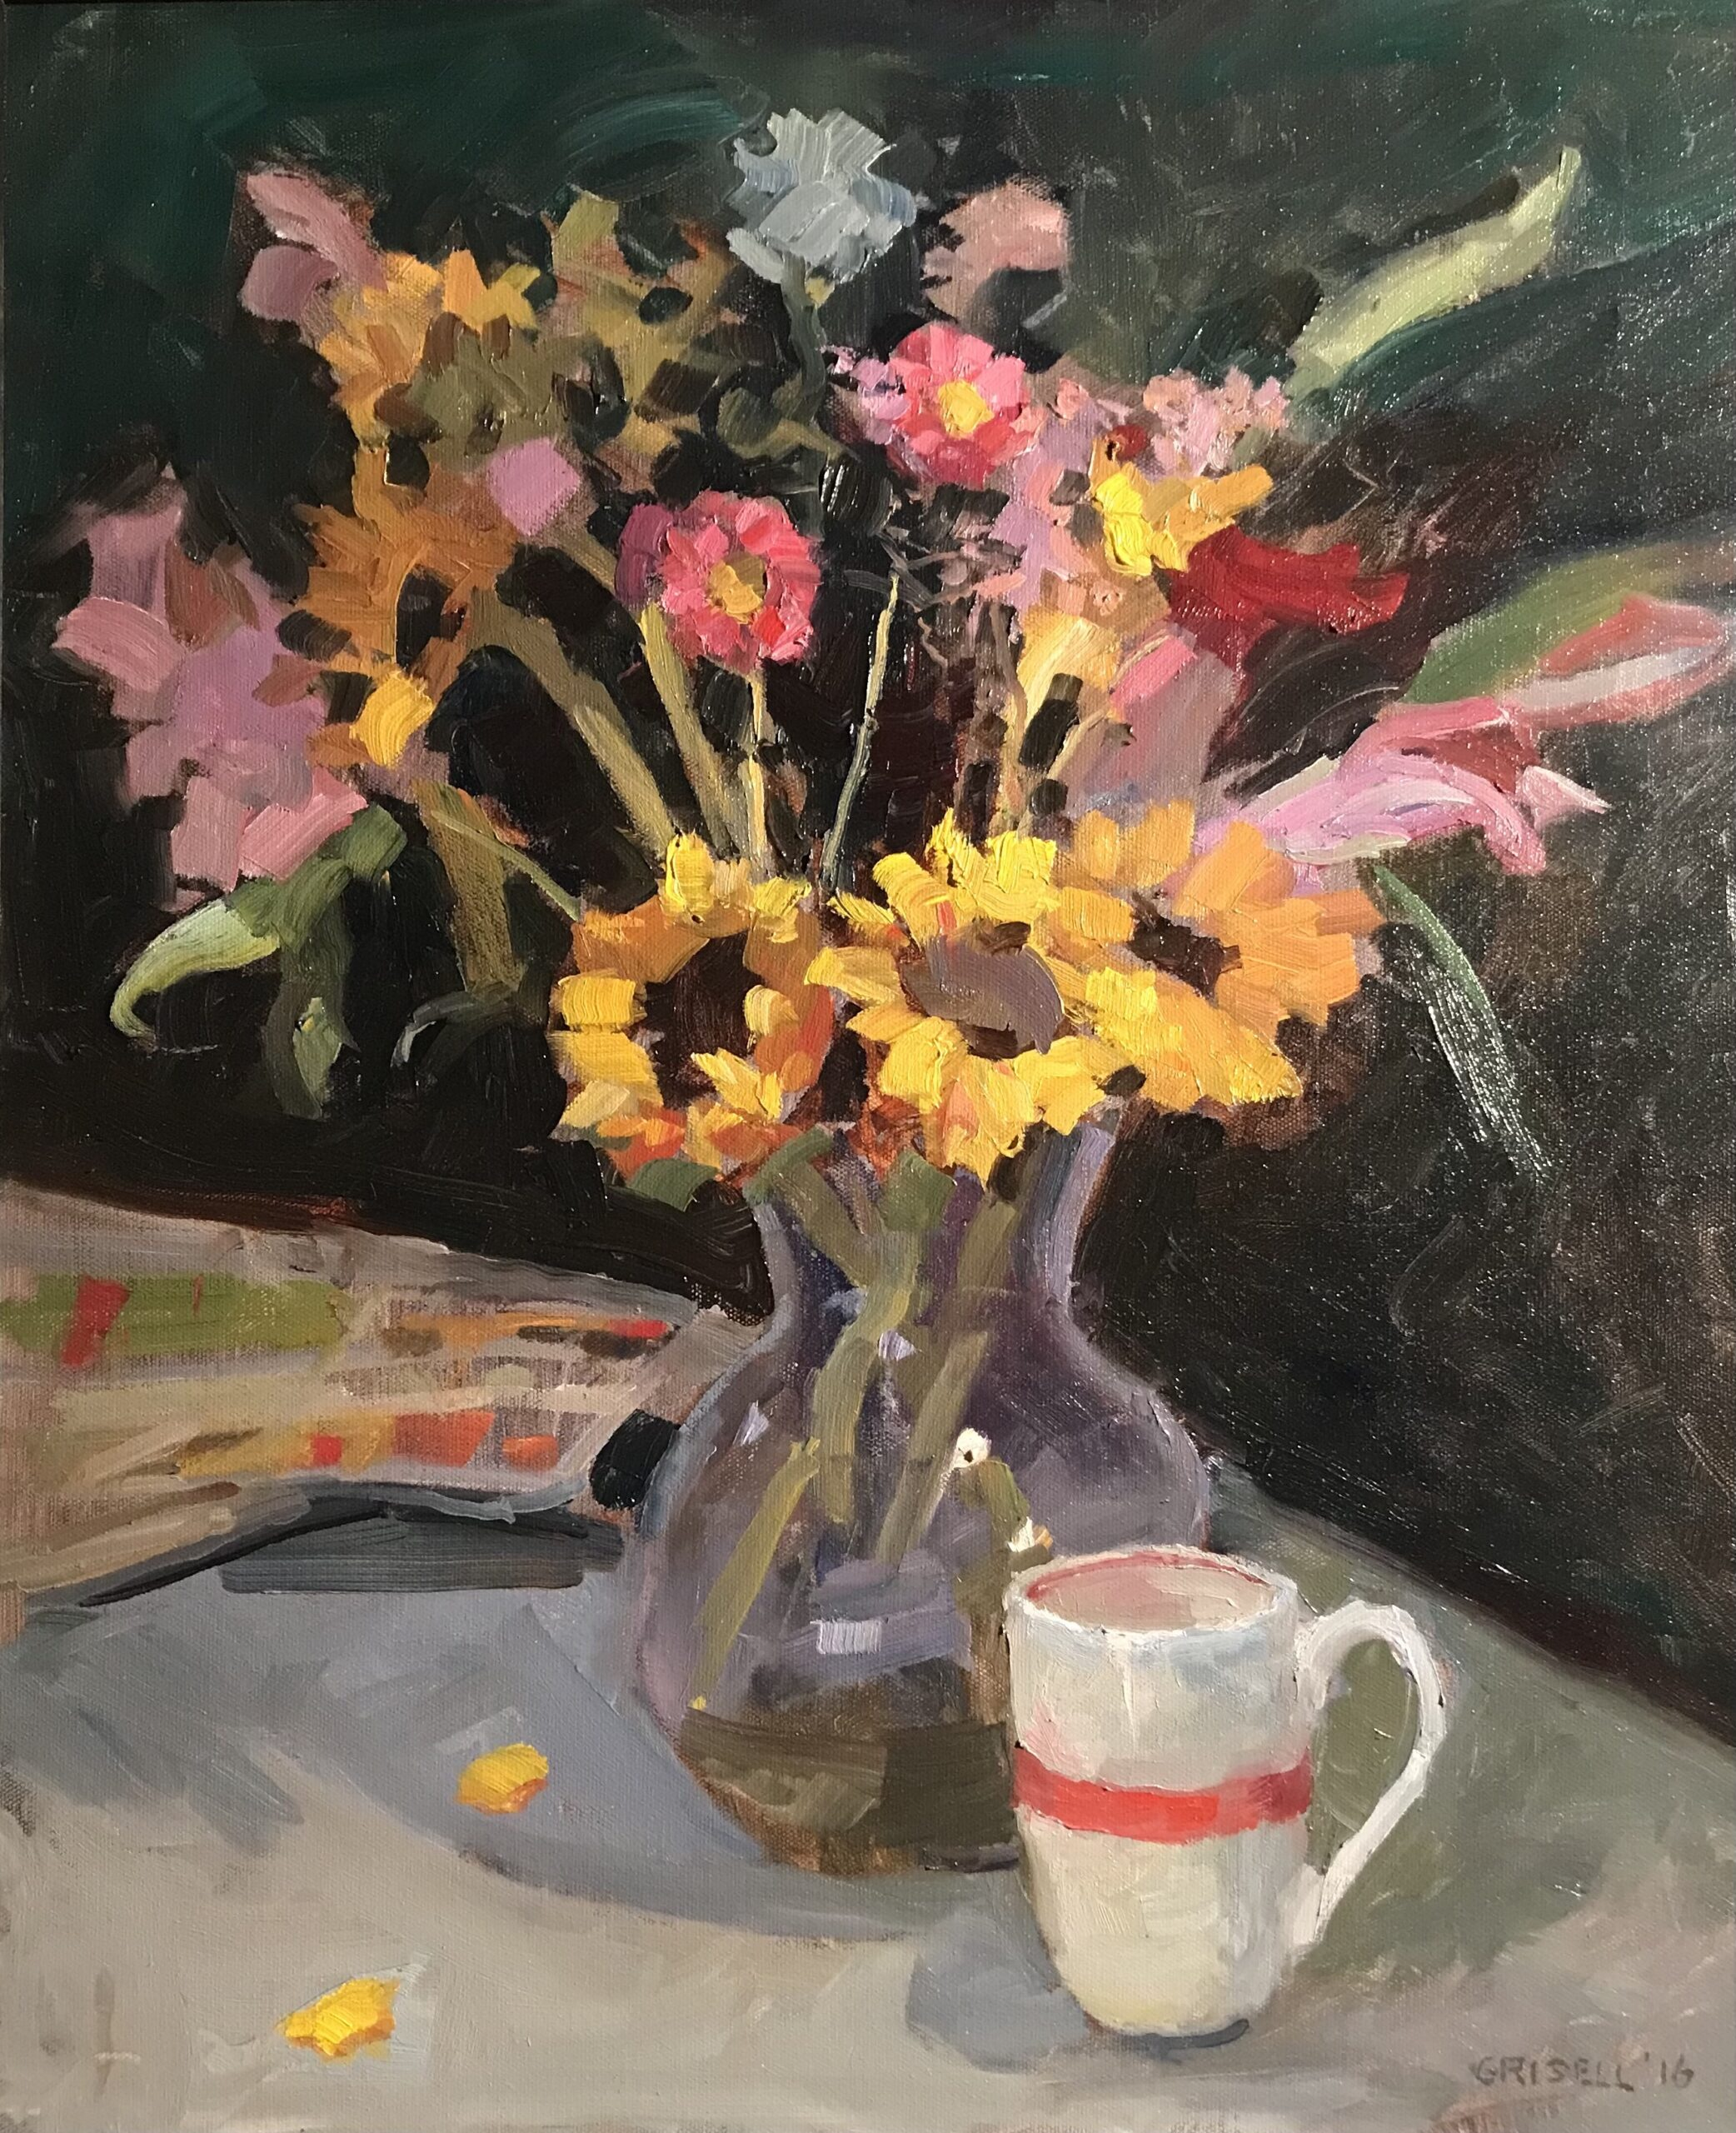 """""""Sunday Morning"""", Oil on Canvas, 24 x 20 Inches, by Susan Grisell $750"""